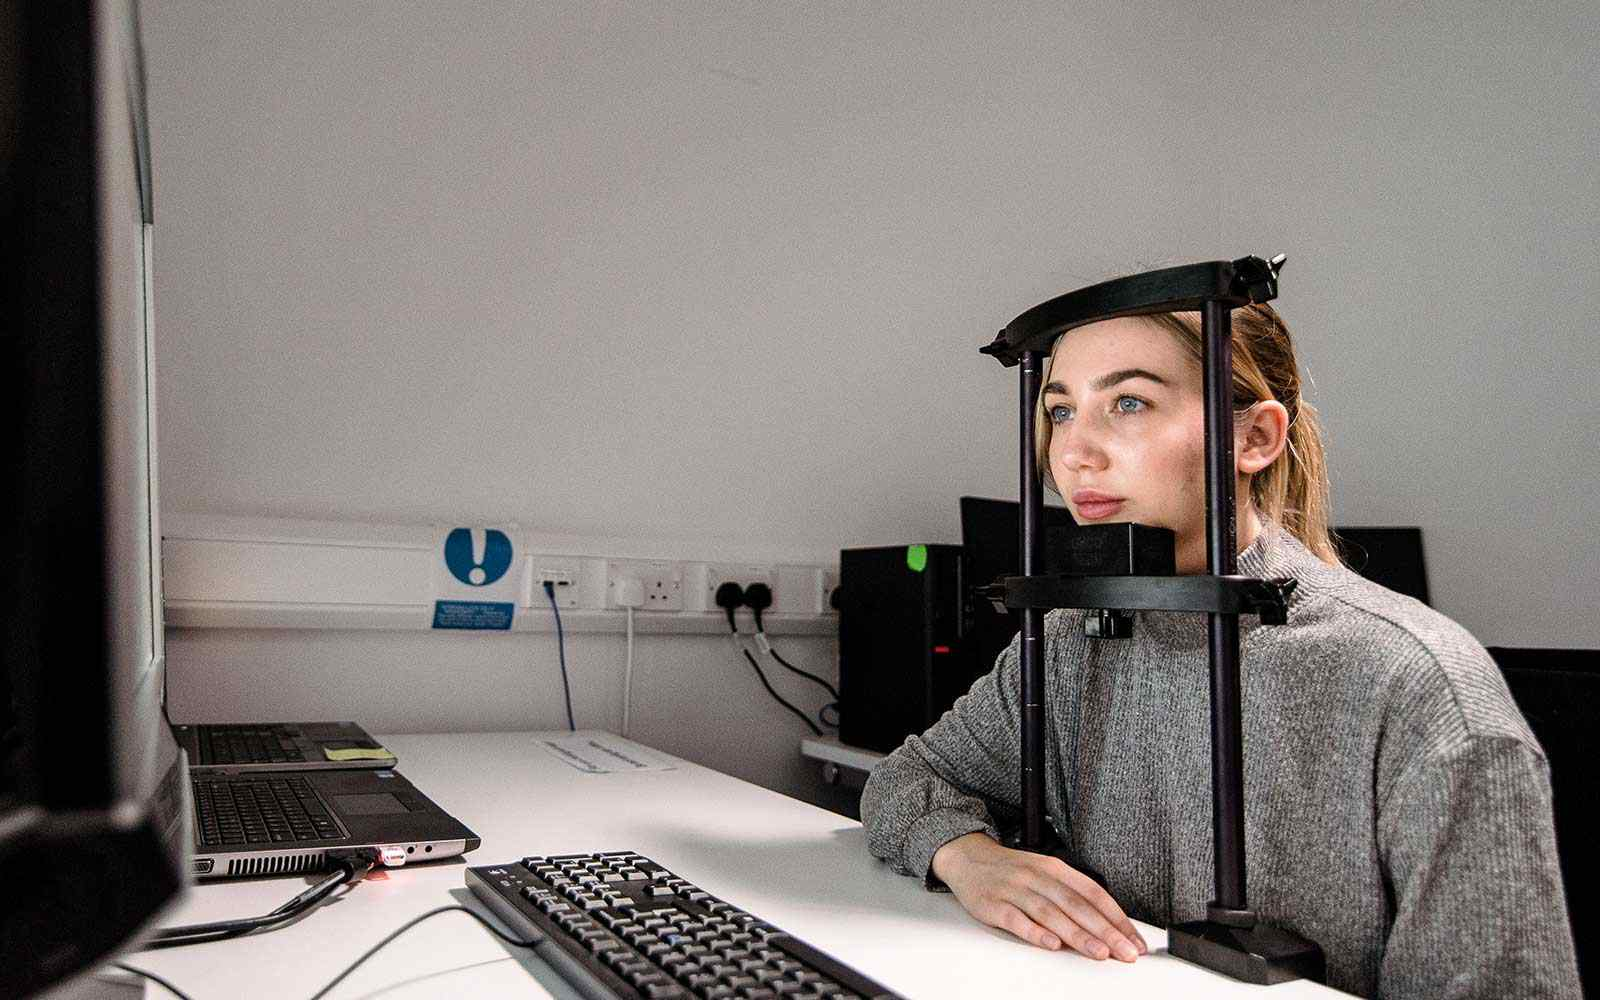 Student using the psychology equipment